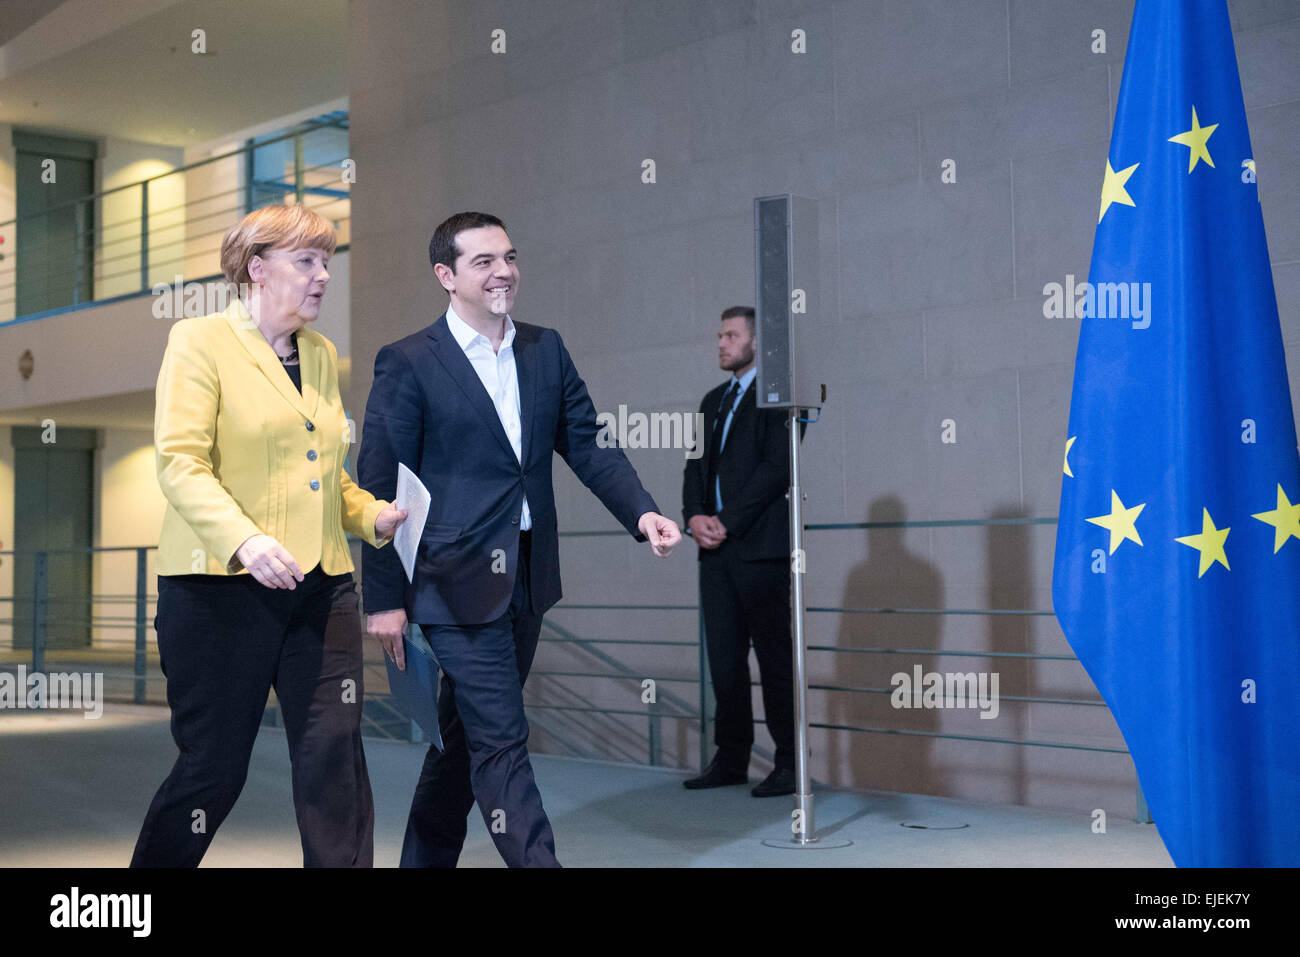 Angela Merkel, German chancellor, welcomes the Greece Prime Minister Alexis Tsipras with Military Honours at the - Stock Image